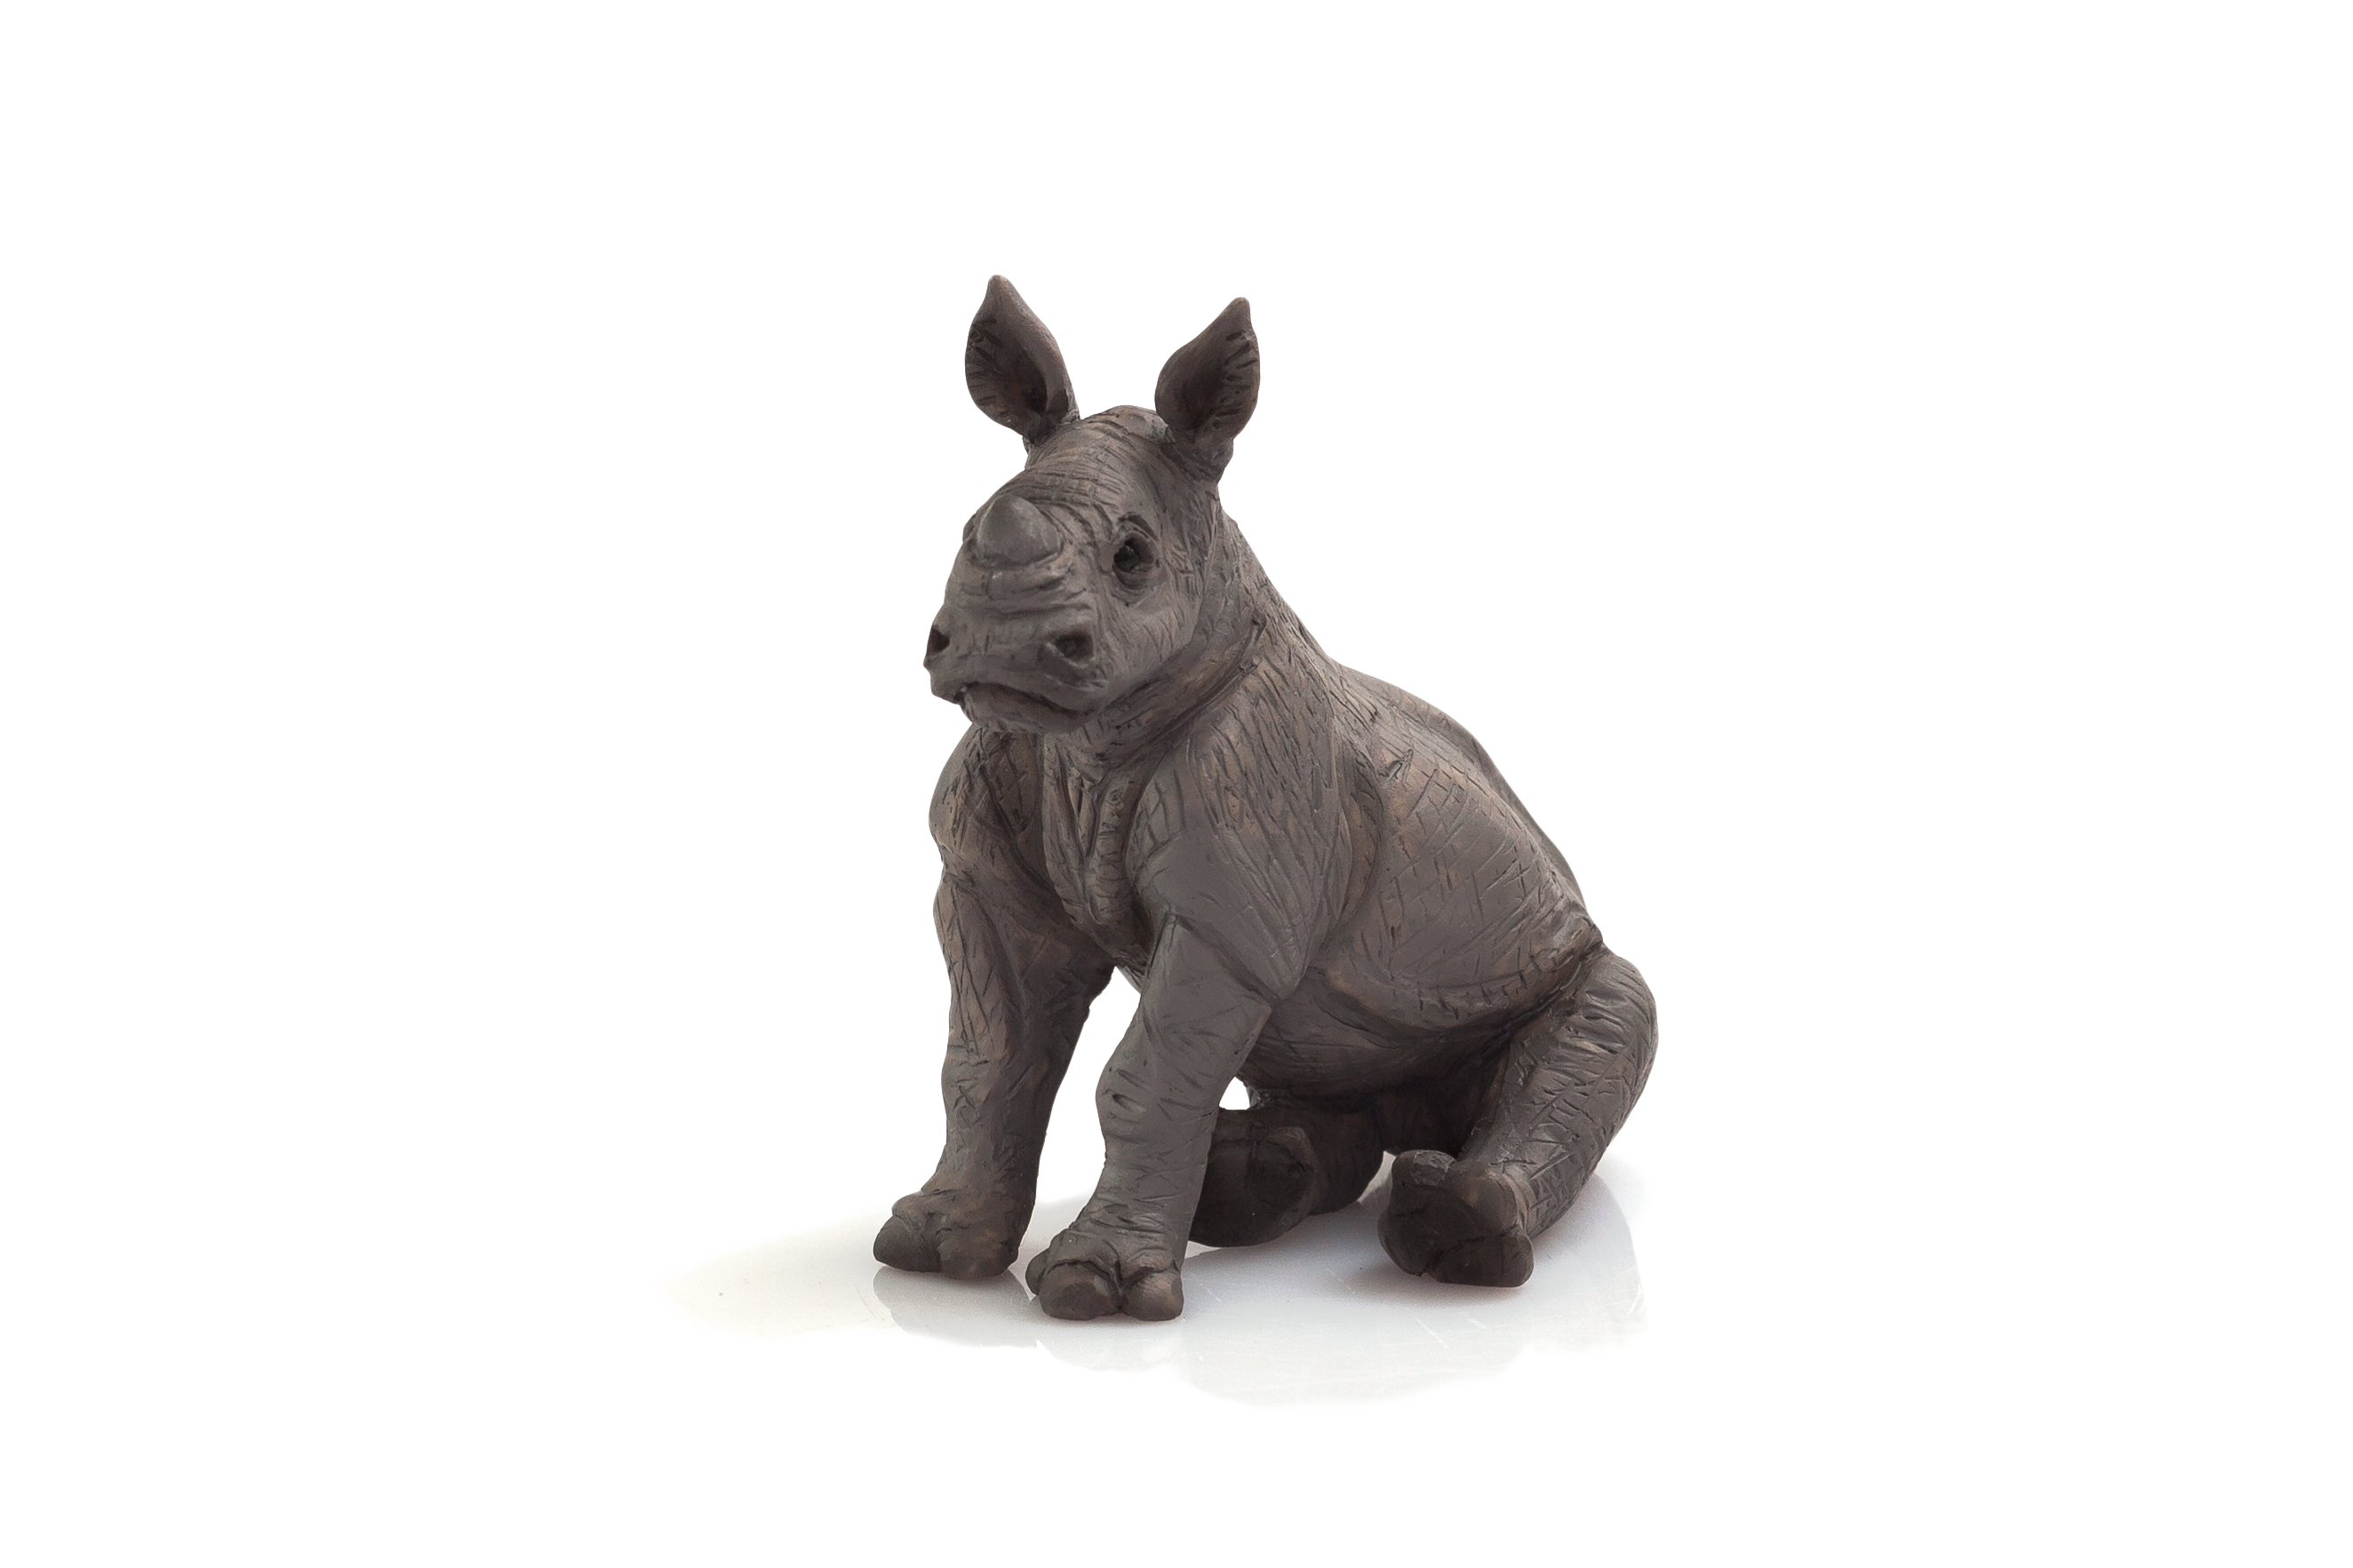 how to change transparency in rhino